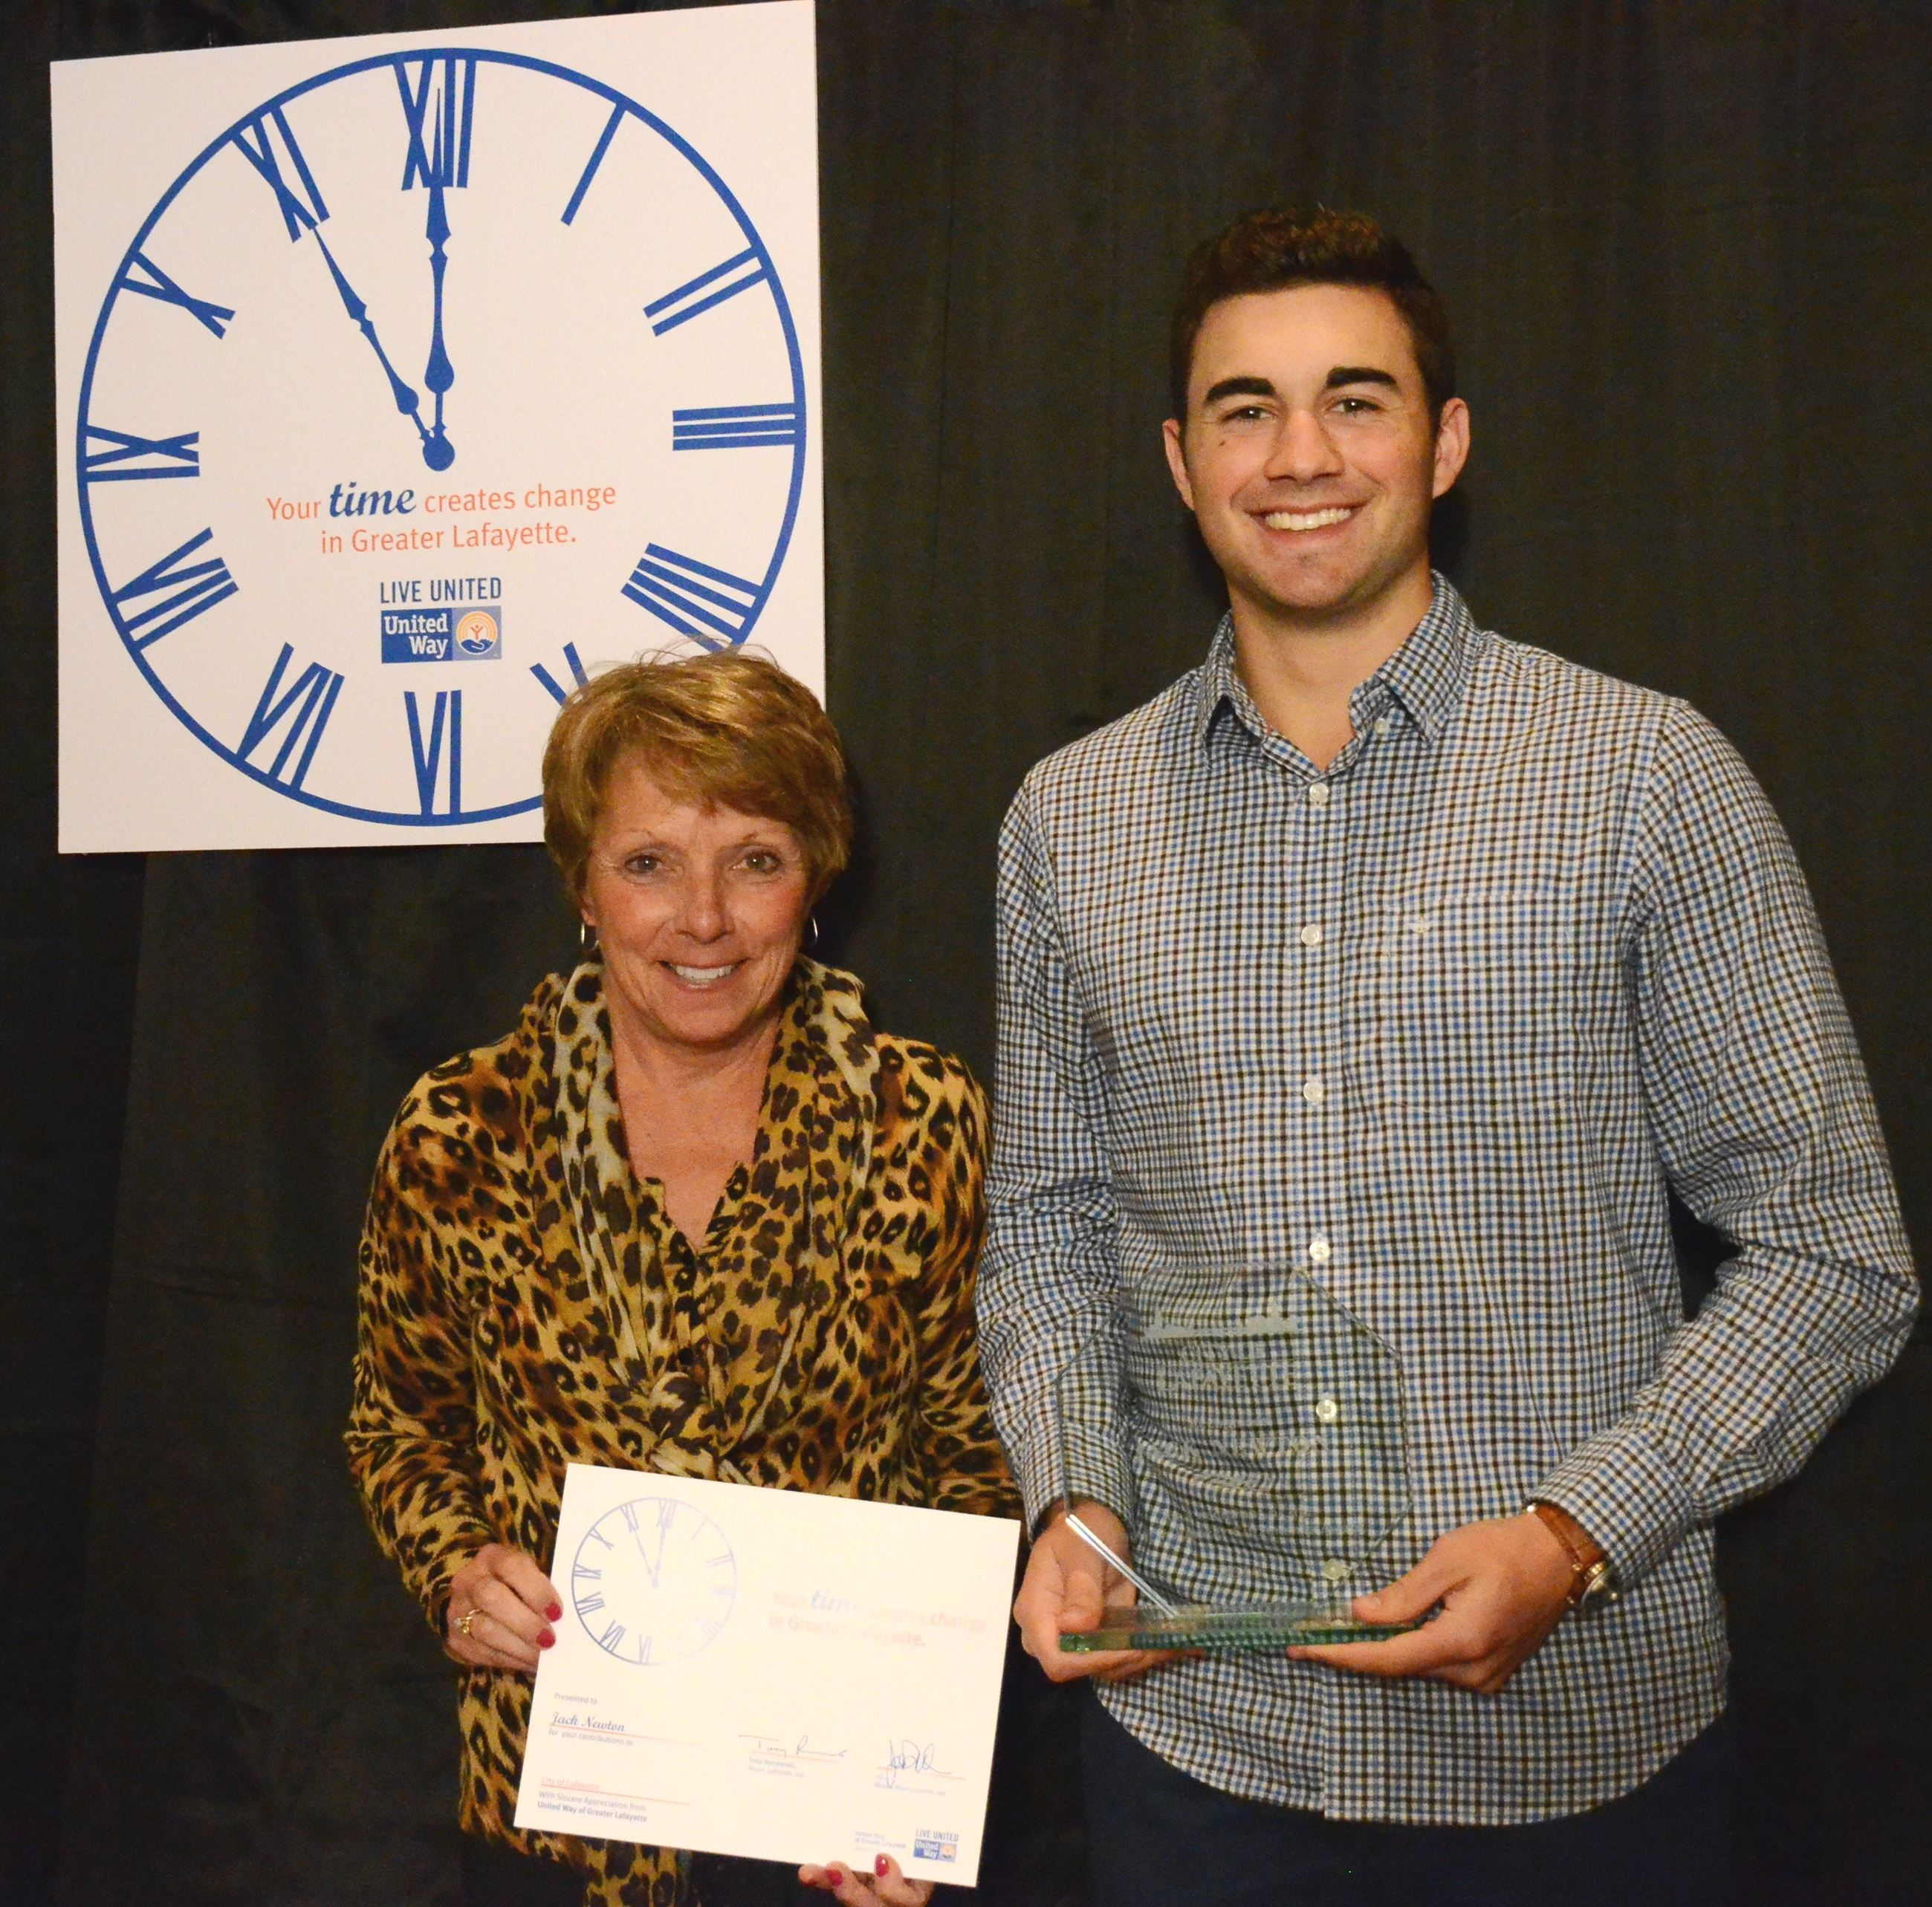 Jack Newton Youth Volunteer Citizenship Award